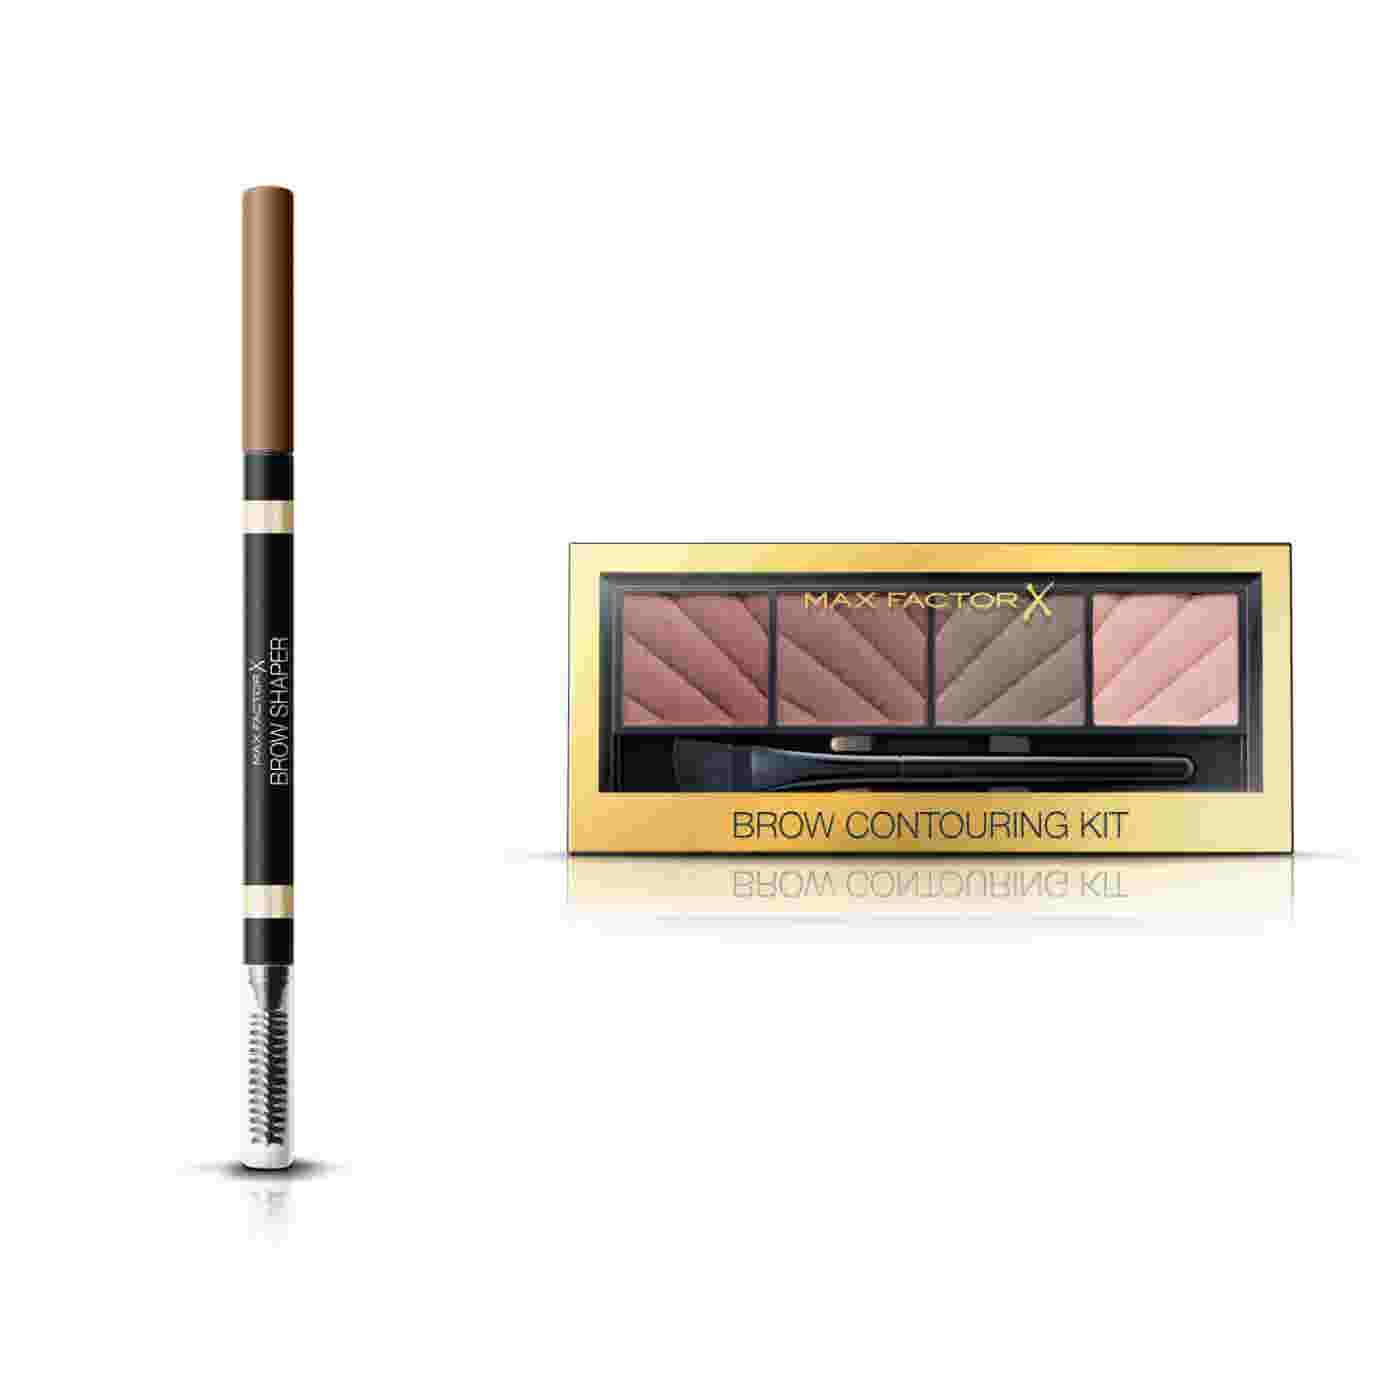 Max Factor Brow Shaper Eyebrow Pencil and Brow Contouring Kit